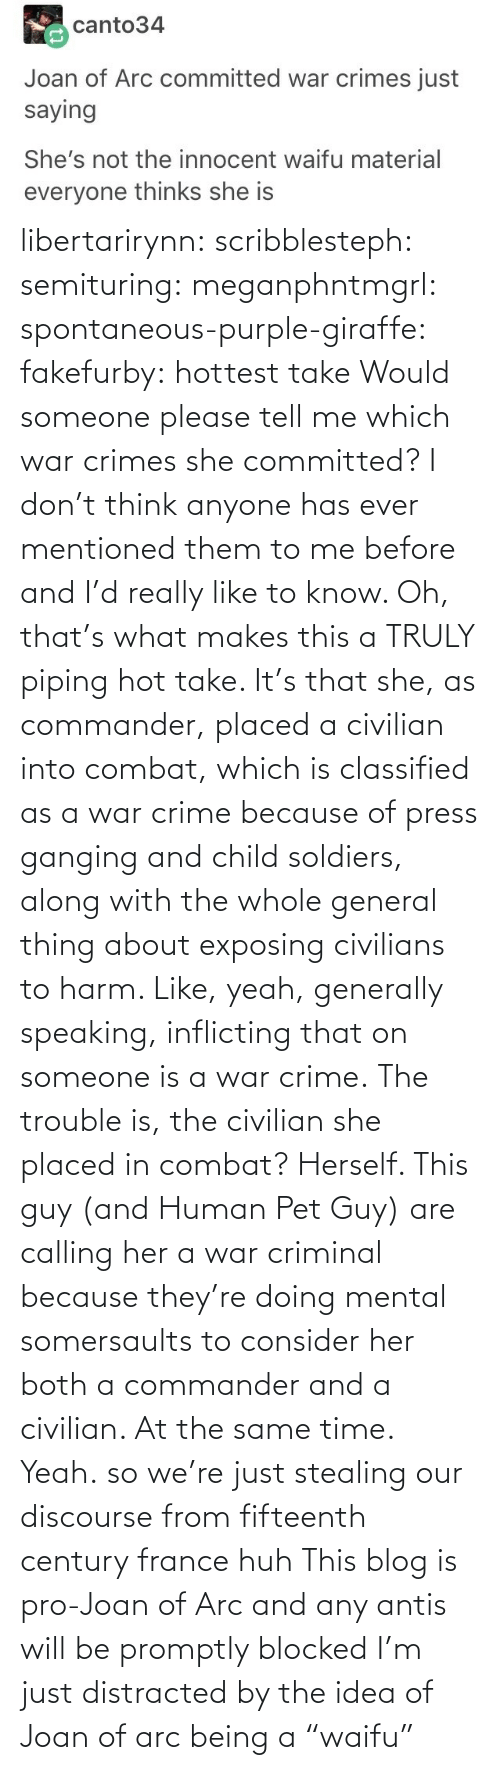 "child: libertarirynn: scribblesteph:  semituring:  meganphntmgrl:  spontaneous-purple-giraffe:   fakefurby: hottest take  Would someone please tell me which war crimes she committed? I don't think anyone has ever mentioned them to me before and I'd really like to know.    Oh, that's what makes this a TRULY piping hot take. It's that she, as commander, placed a civilian into combat, which is classified as a war crime because of press ganging and child soldiers, along with the whole general thing about exposing civilians to harm. Like, yeah, generally speaking, inflicting that on someone is a war crime. The trouble is, the civilian she placed in combat? Herself.  This guy (and Human Pet Guy) are calling her a war criminal because they're doing mental somersaults to consider her both a commander and a civilian. At the same time.  Yeah.  so we're just stealing our discourse from fifteenth century france huh   This blog is pro-Joan of Arc and any antis will be promptly blocked   I'm just distracted by the idea of Joan of arc being a ""waifu"""